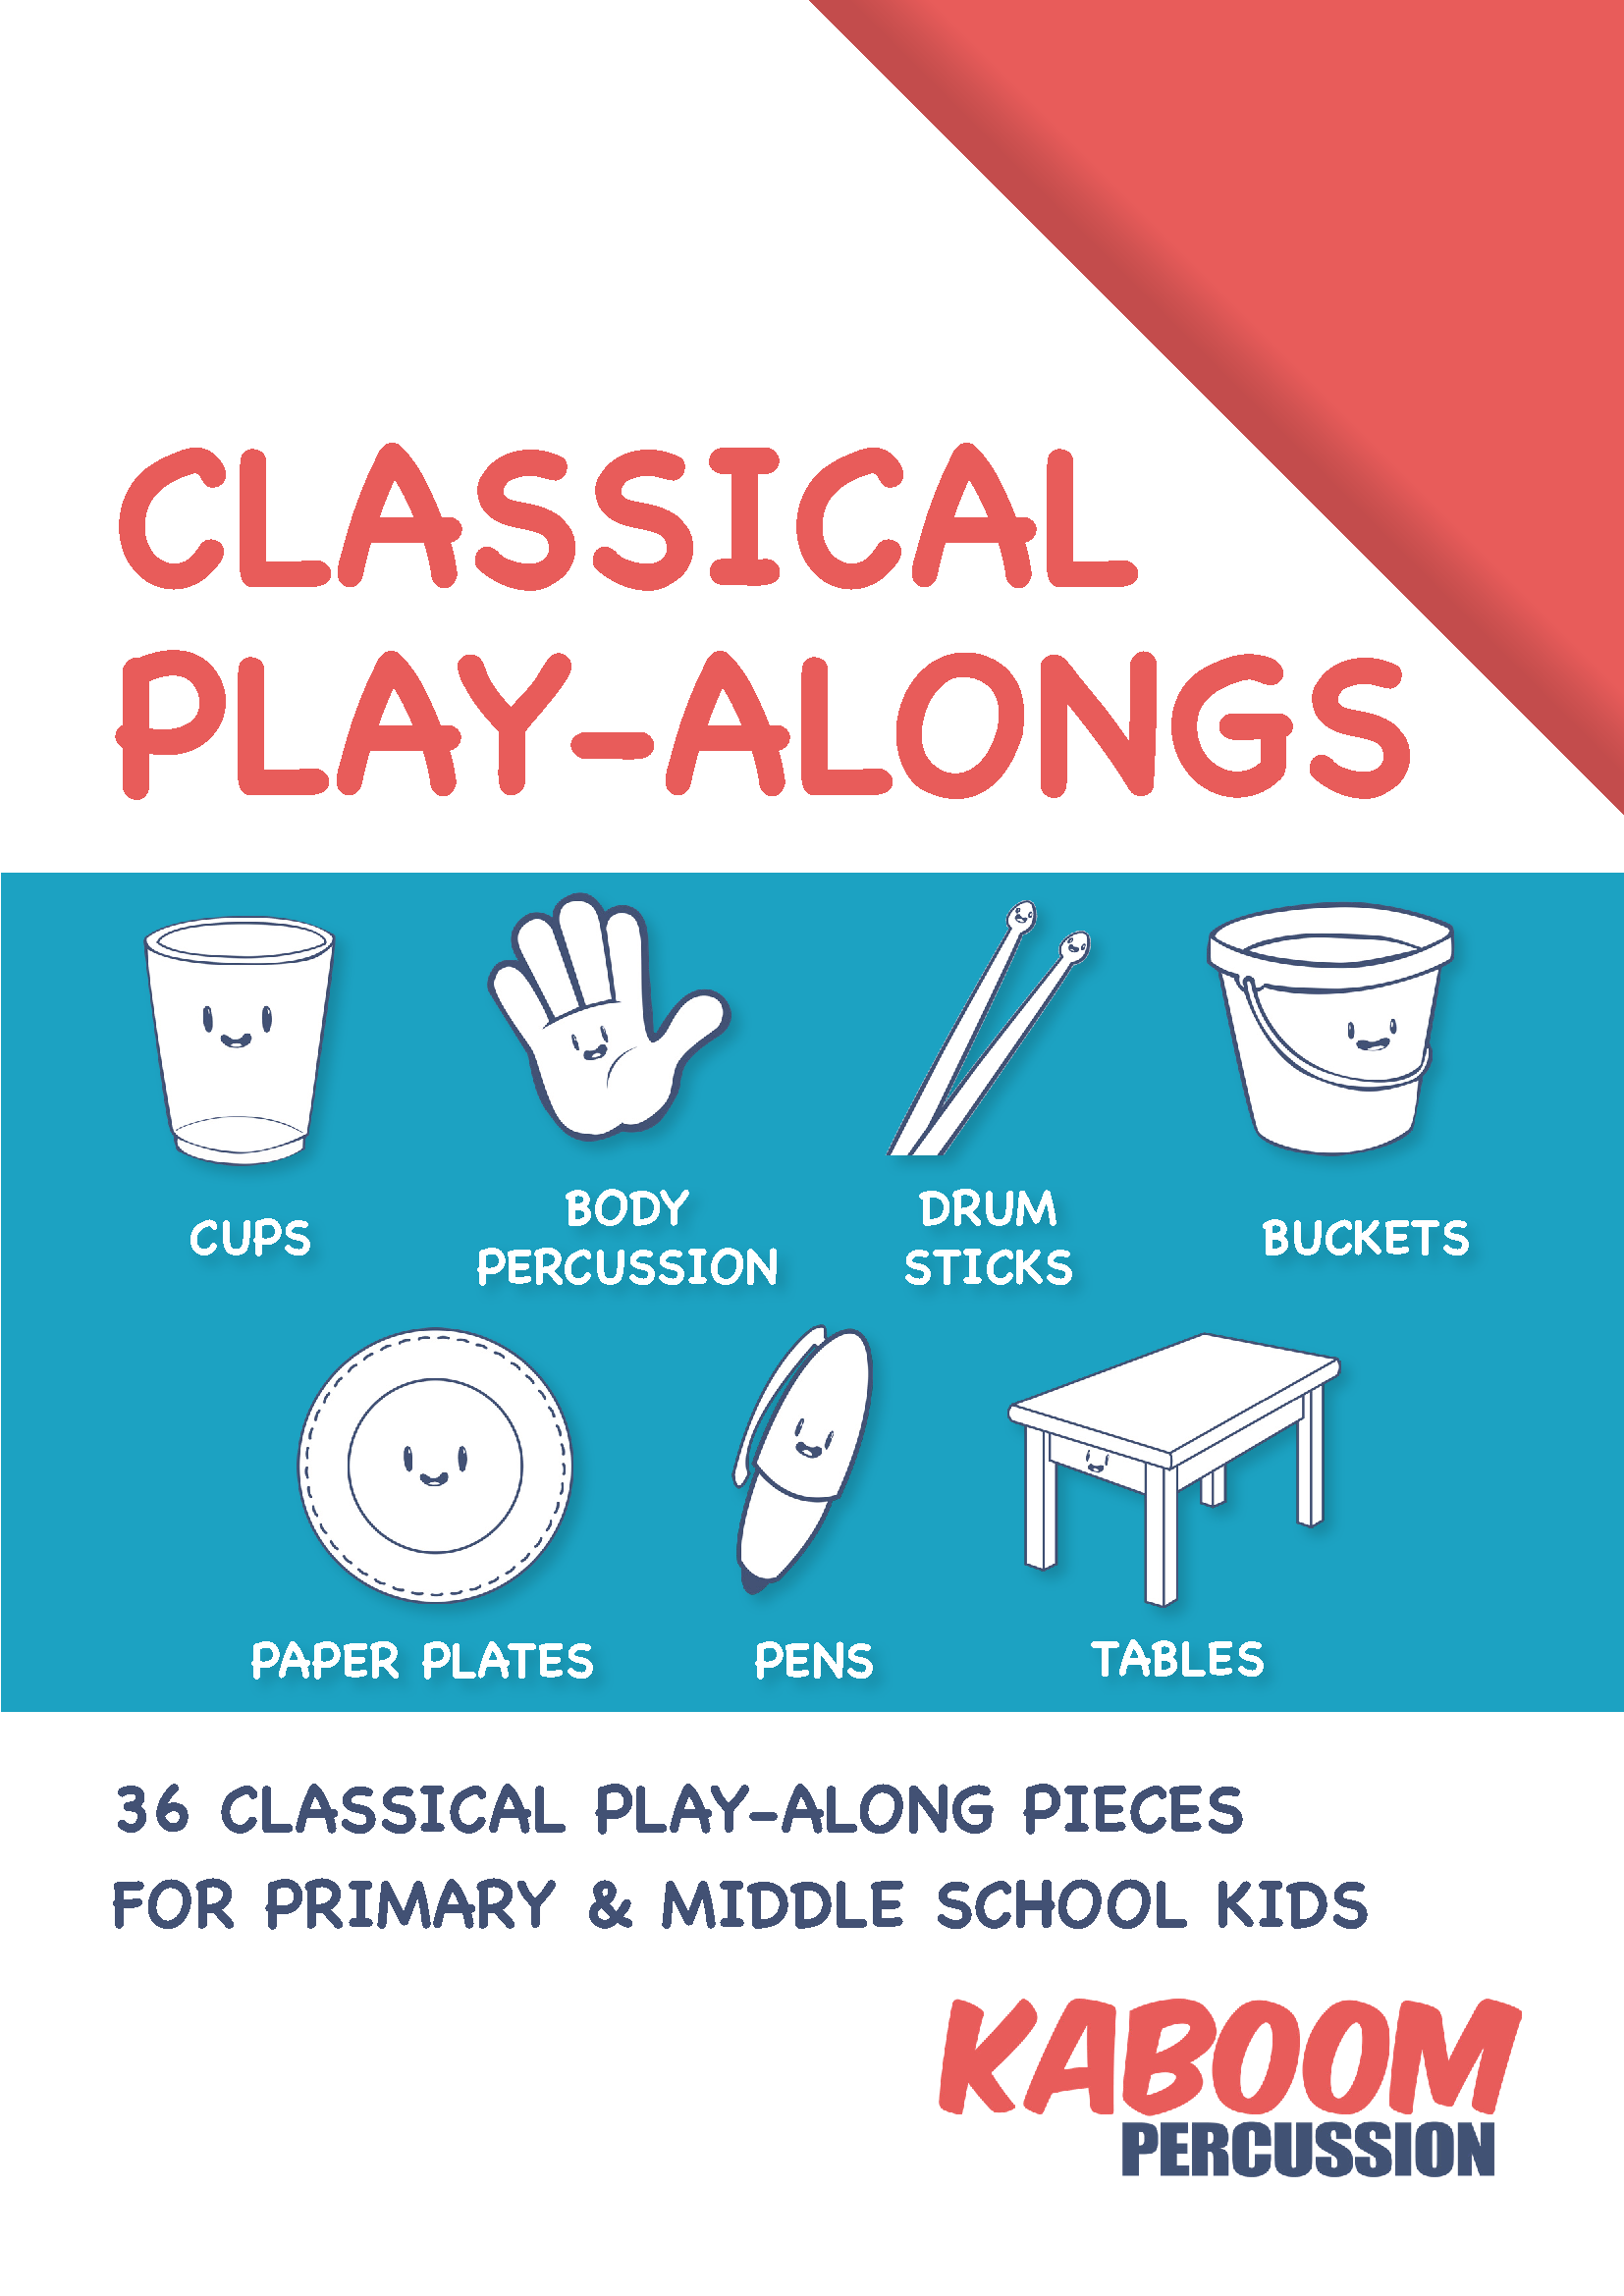 Classical Play Alongs Kaboompercussion